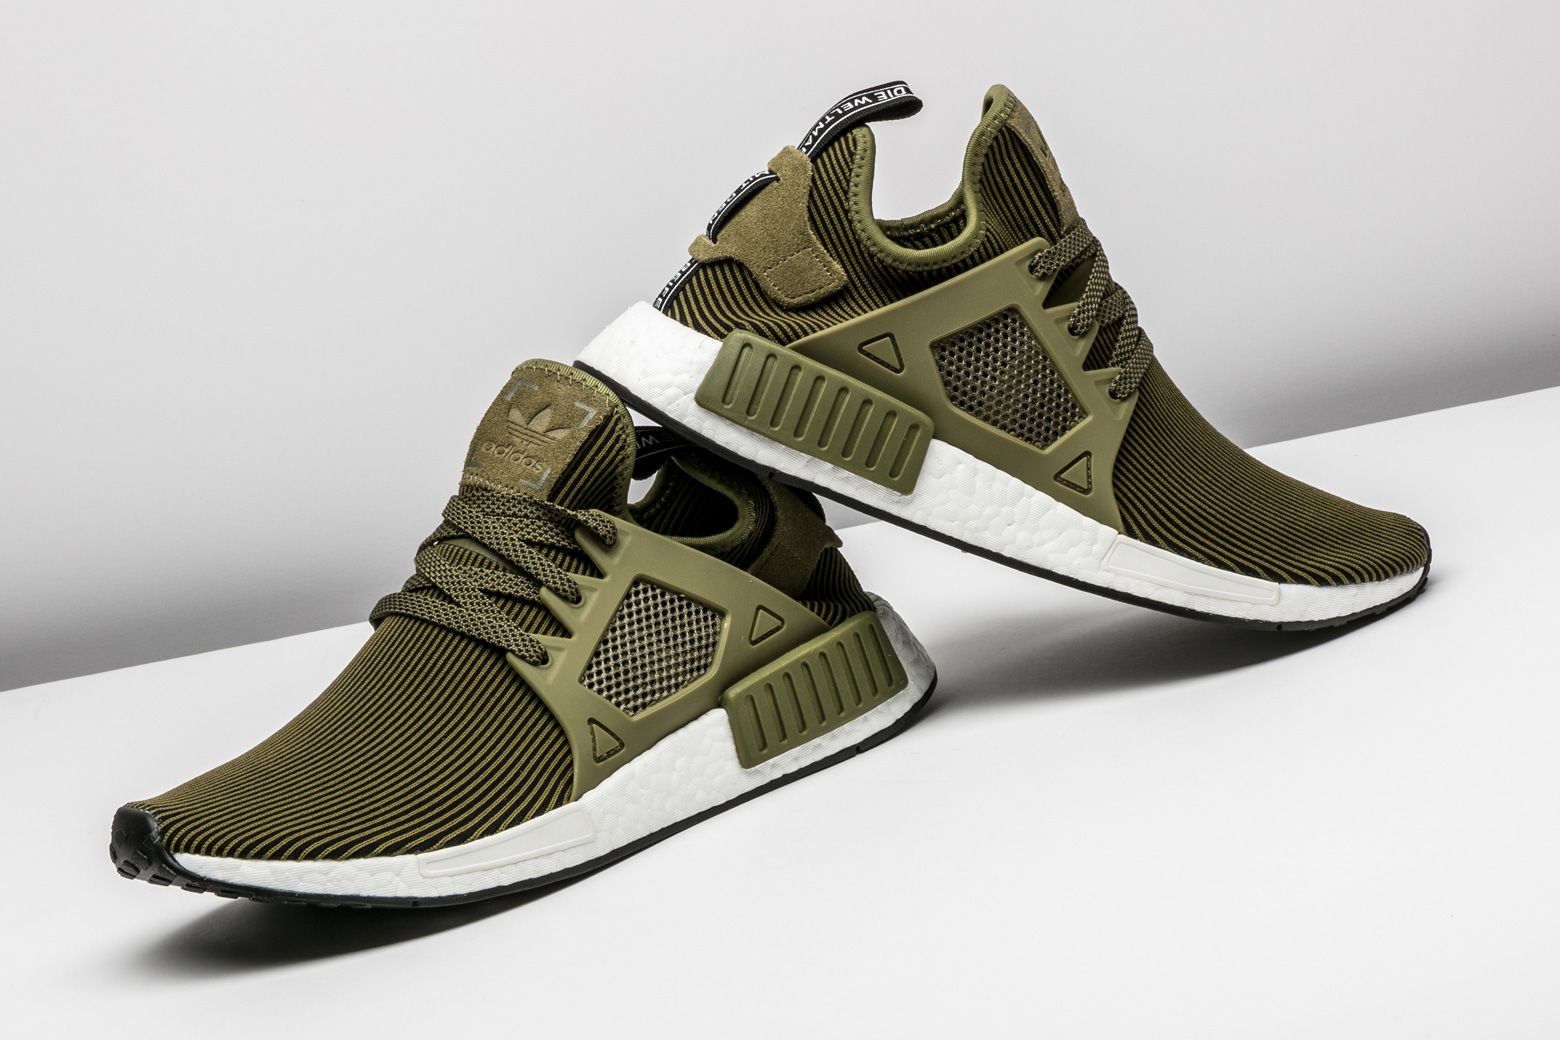 Adidas NMD XR1 Glitch Primeknit Grey White Brown Boost Shoes